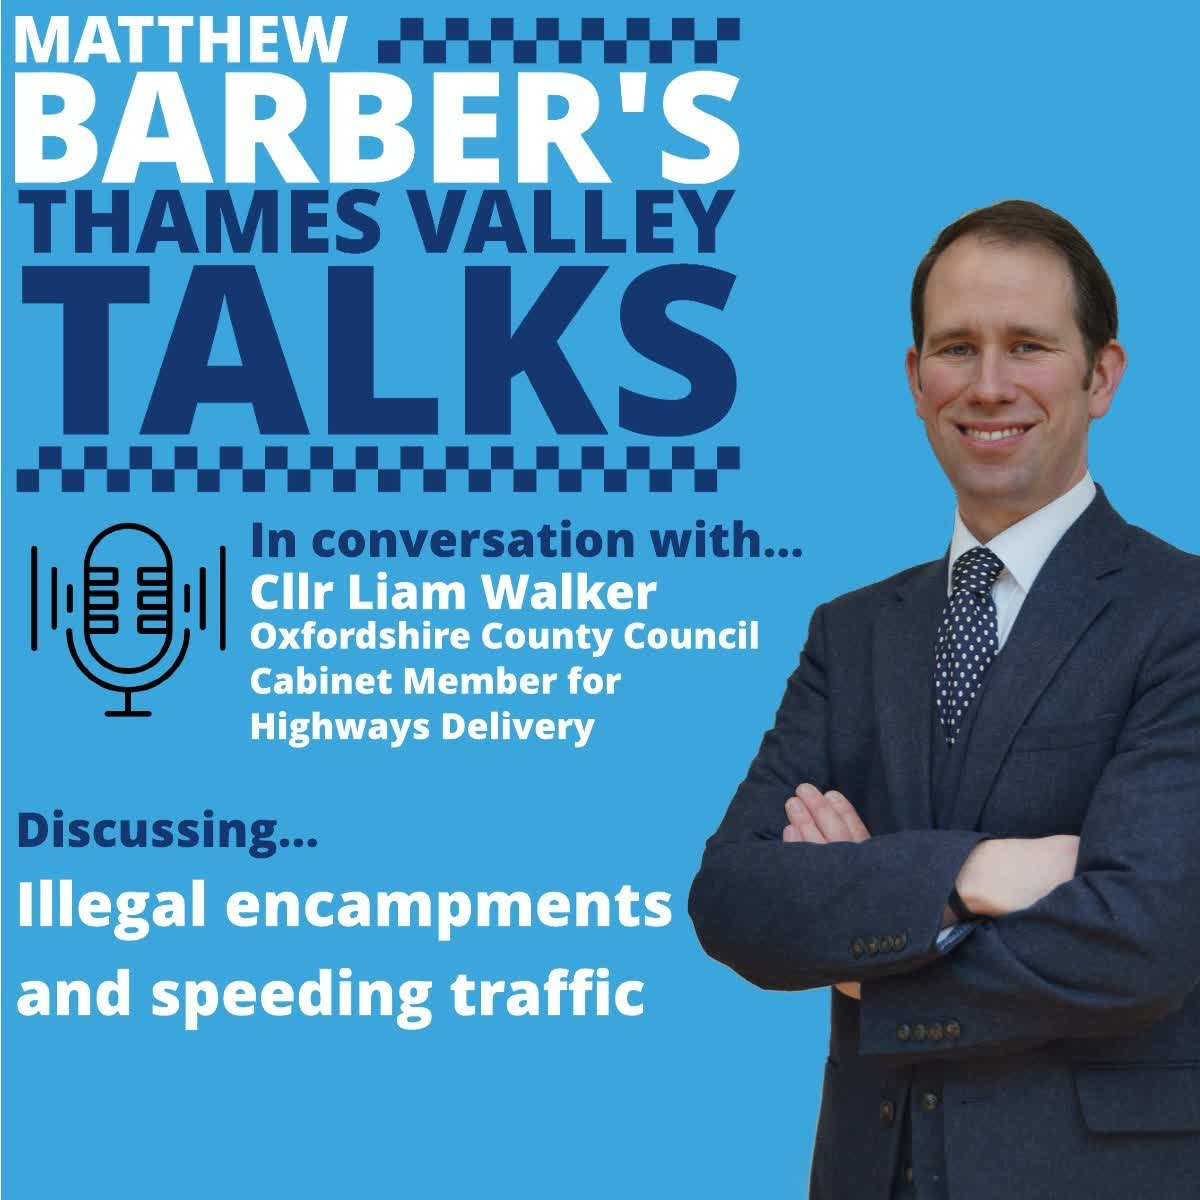 Illegal encampments and speeding - in conversation with Cllr Liam Walker